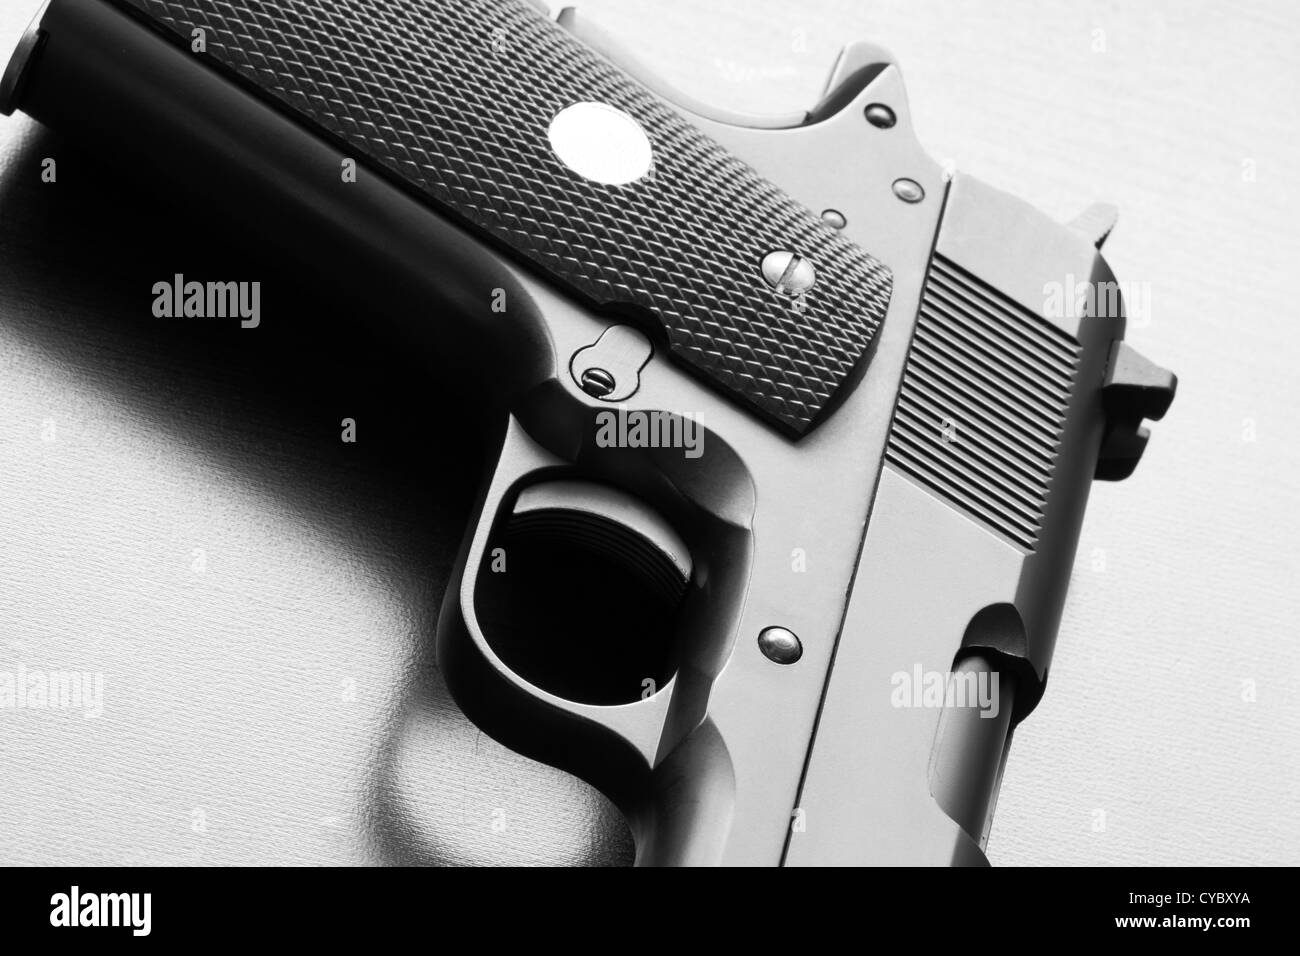 pistol black and white stock photos images alamy